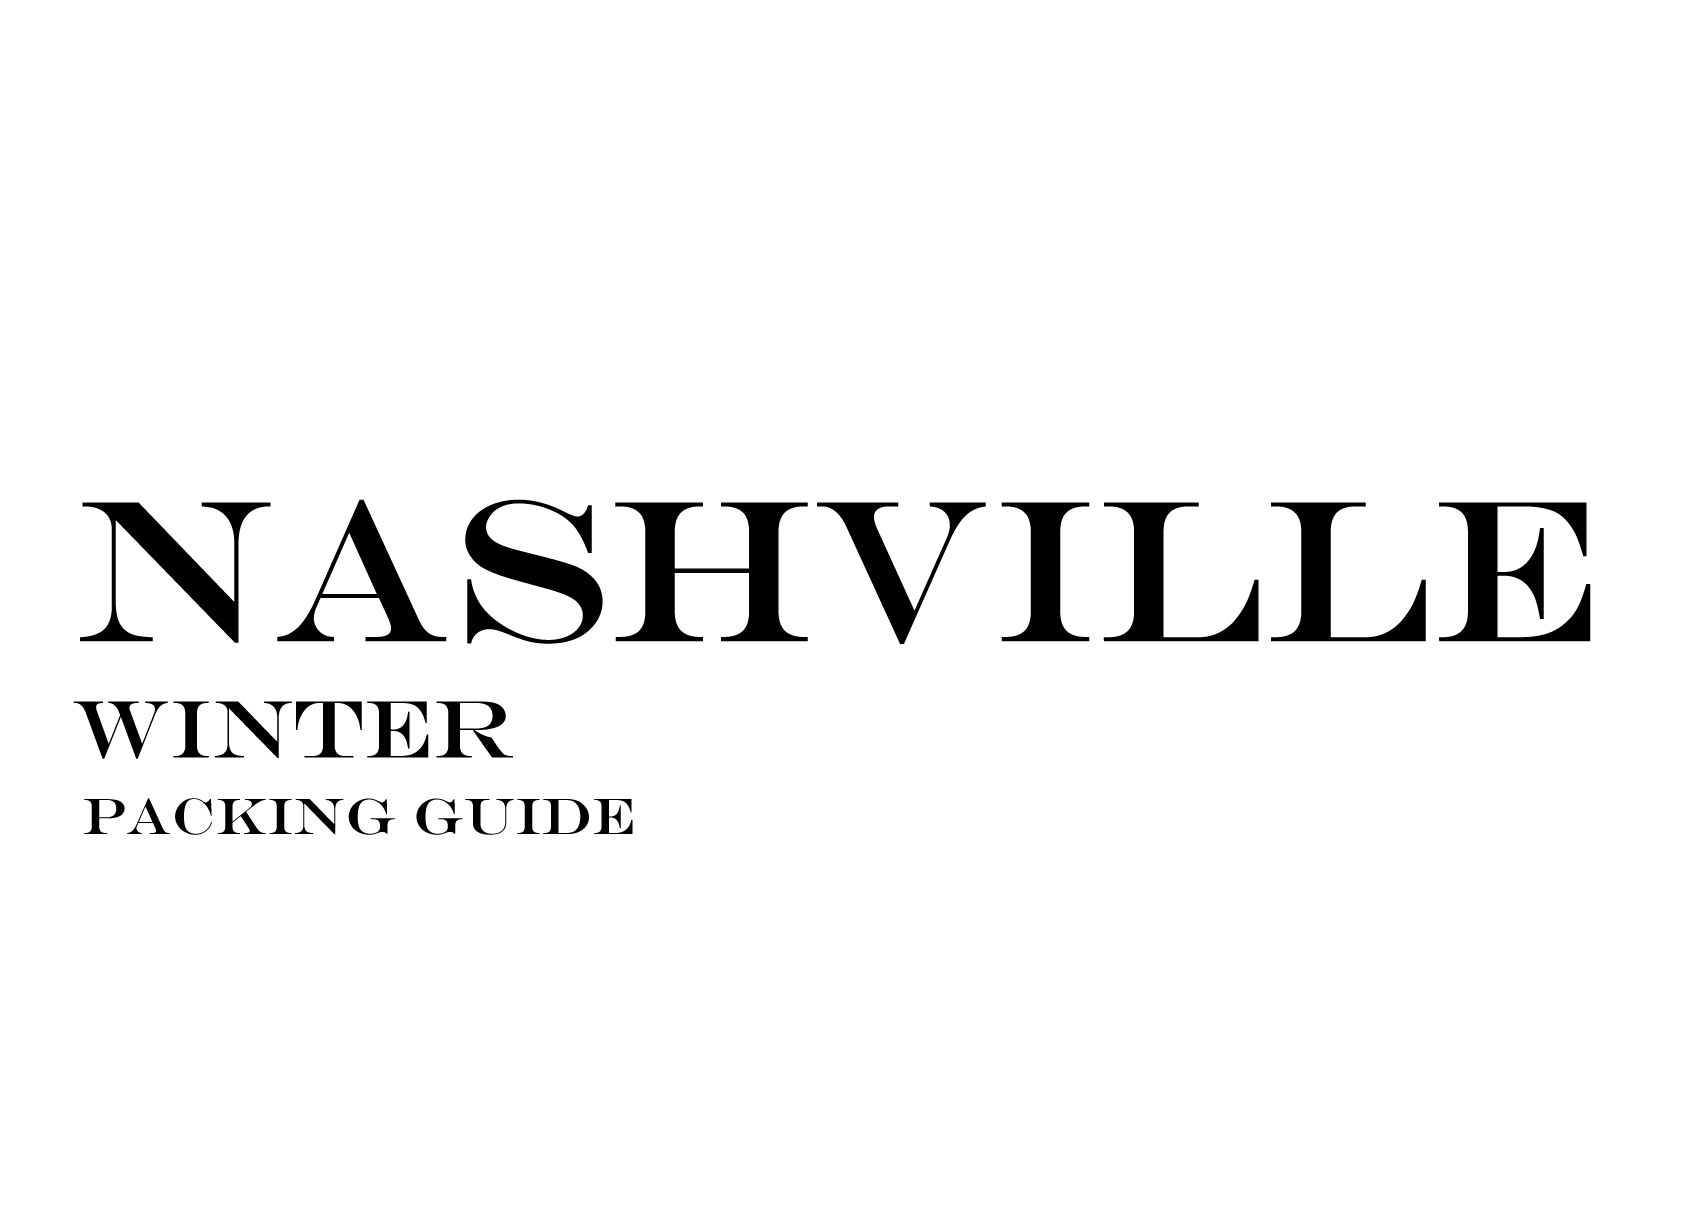 NASHVILLE Winter Packing Guide   What to Wear to NASHVILLE in the Winter   Outfits for